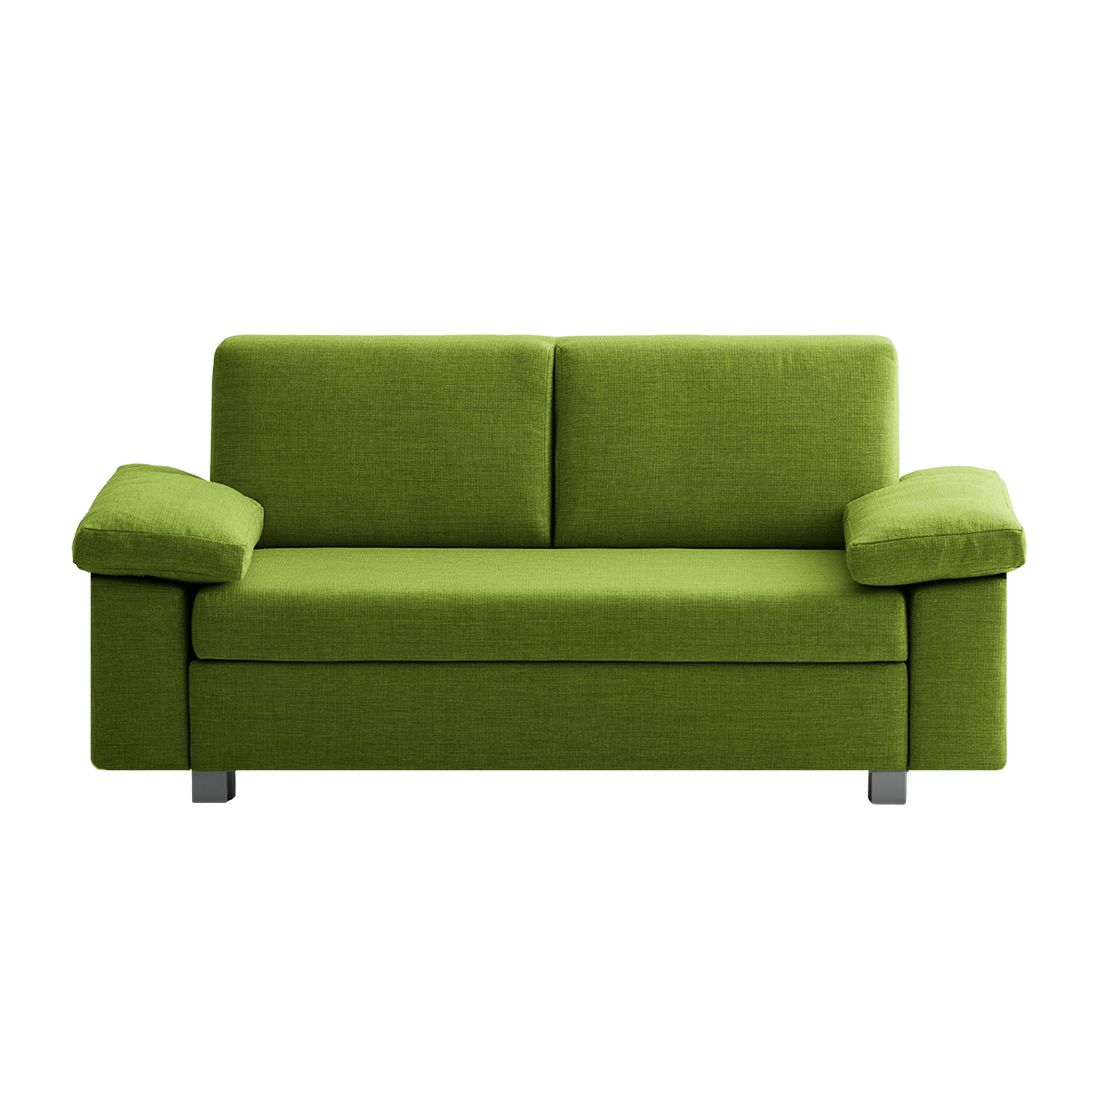 Canapé convertible Plaza - Tissu - Vert - 172 cm - Types d'accoudoir rabattable, chillout by Franz F